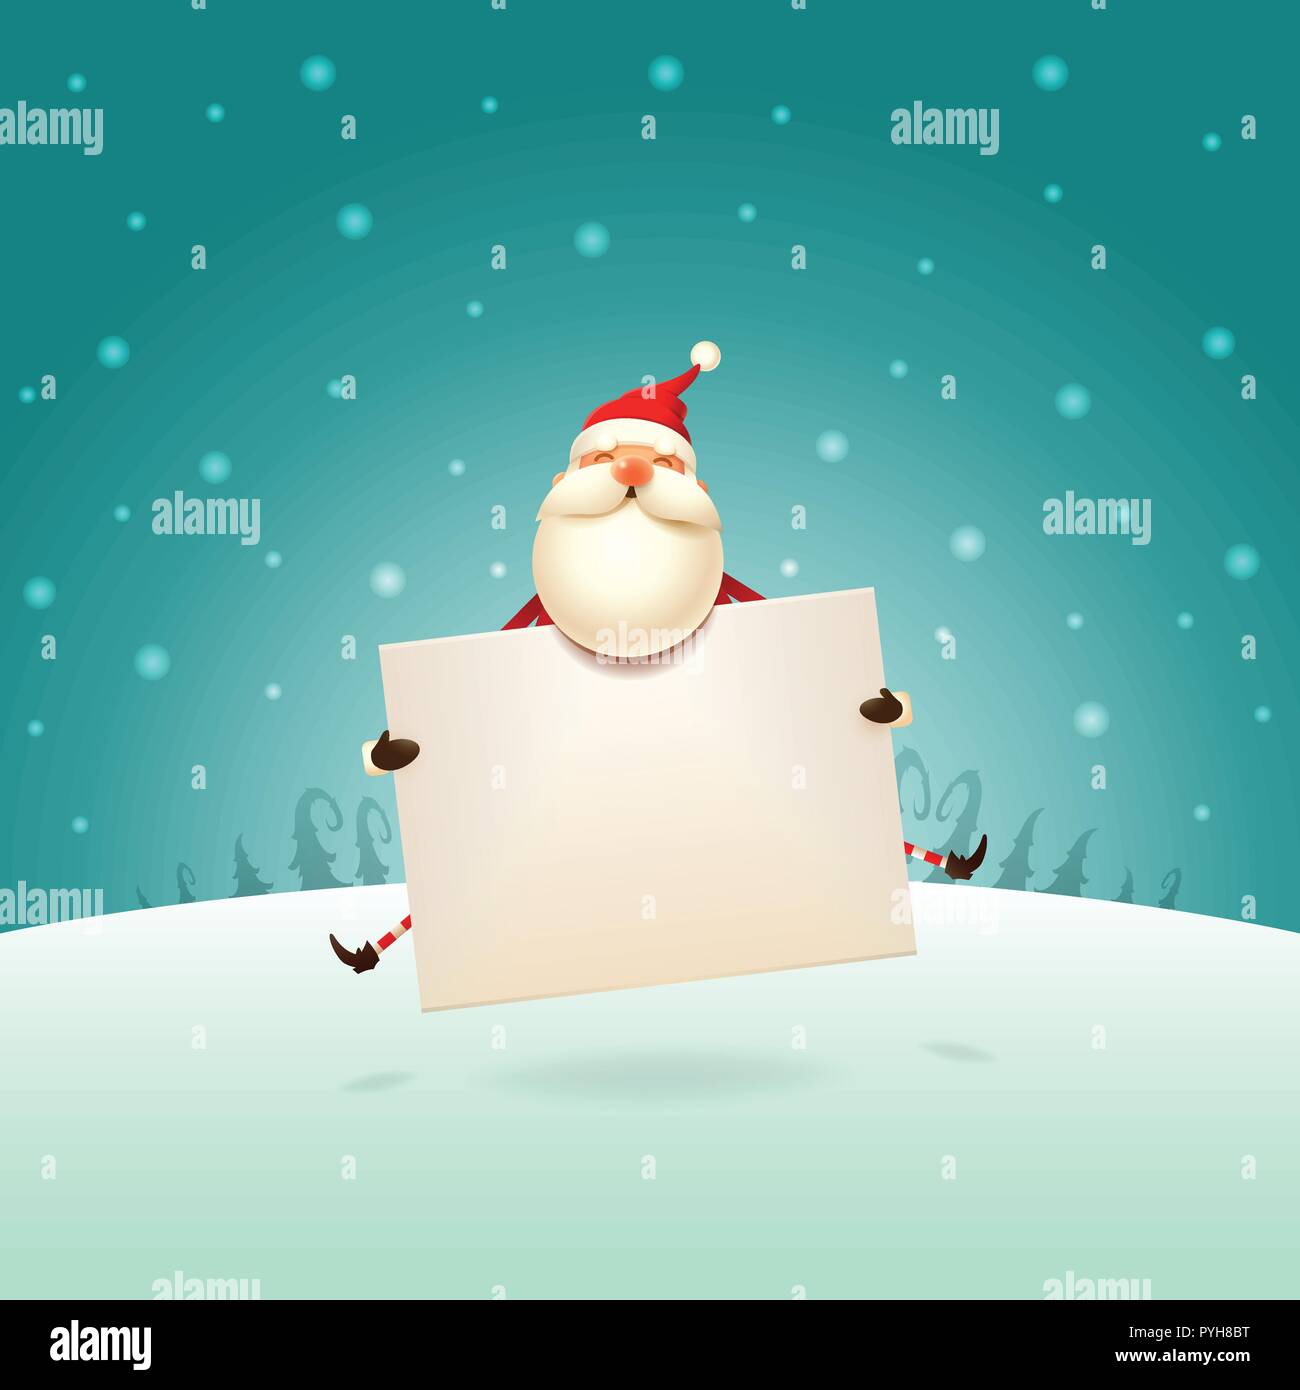 cute santa claus jumping with board on winter landscape christmas